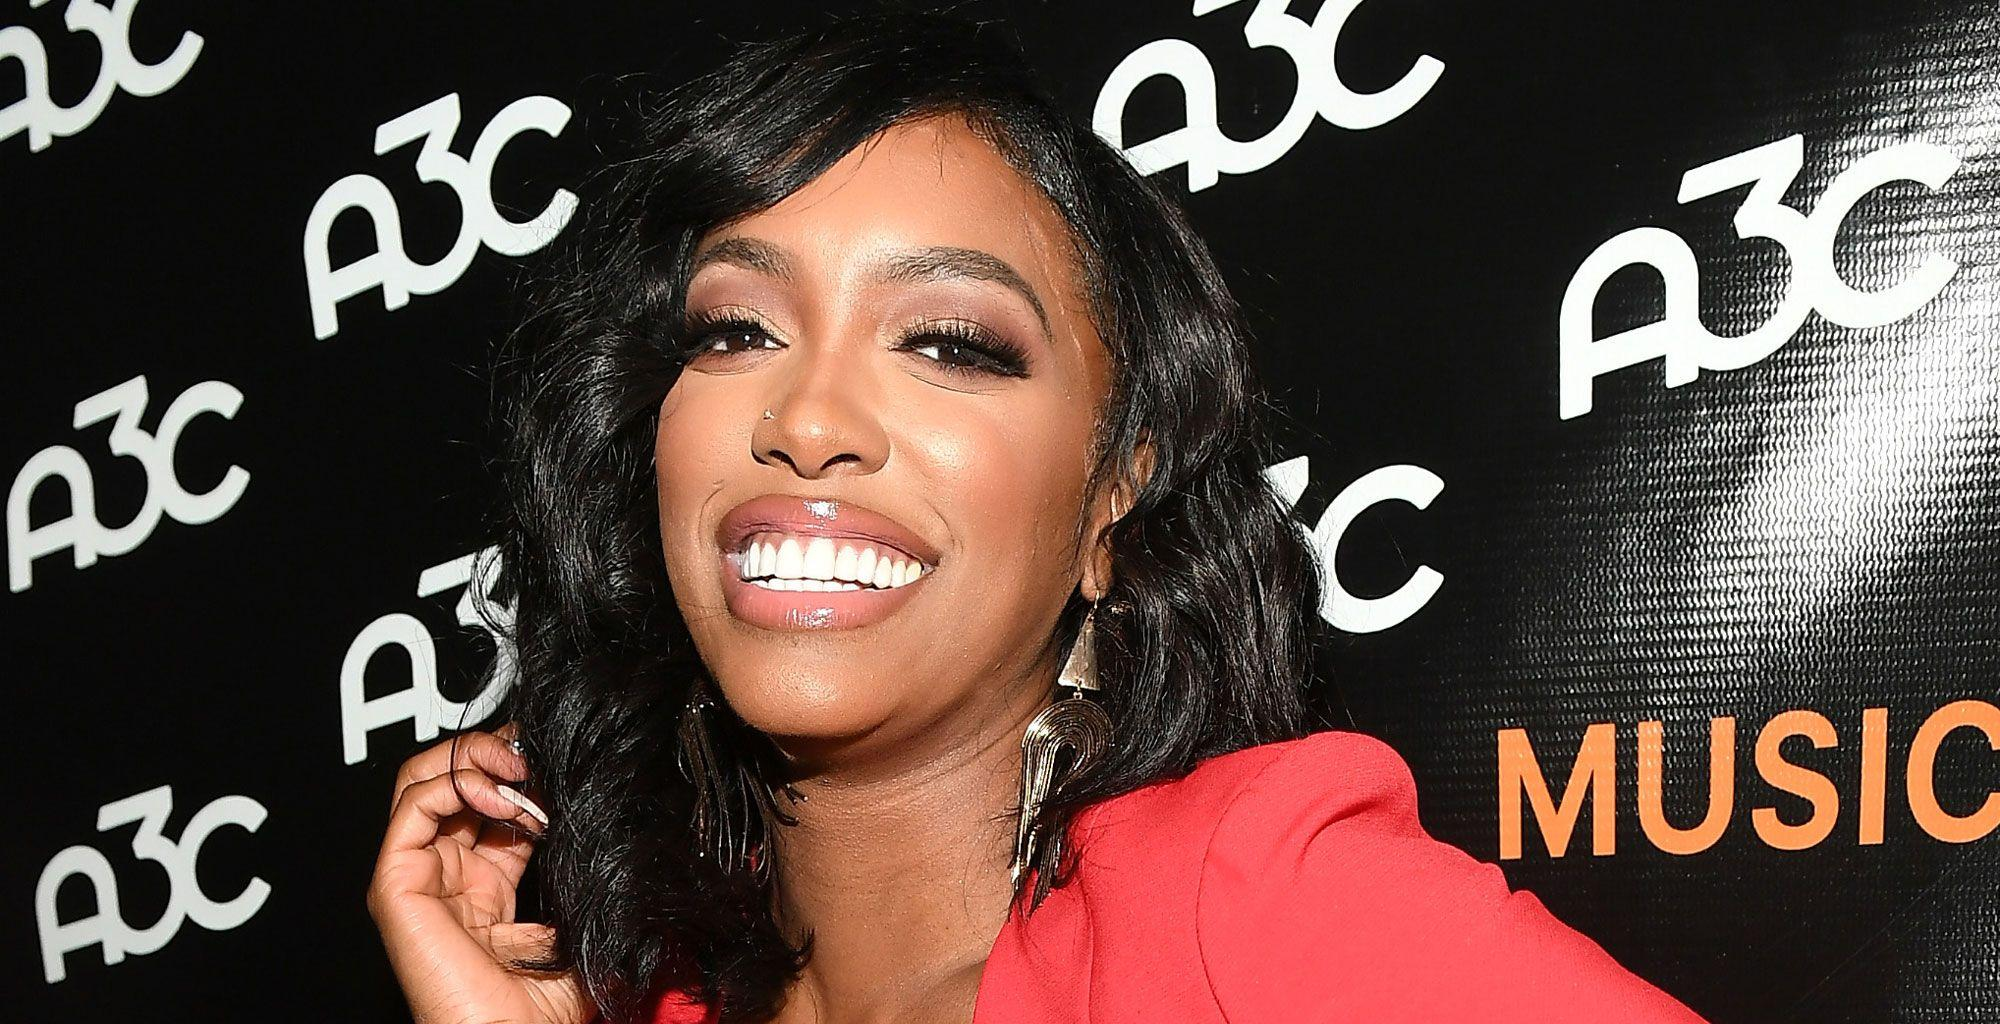 Porsha Williams Is Going On Vacay - Check Out The Family Photo